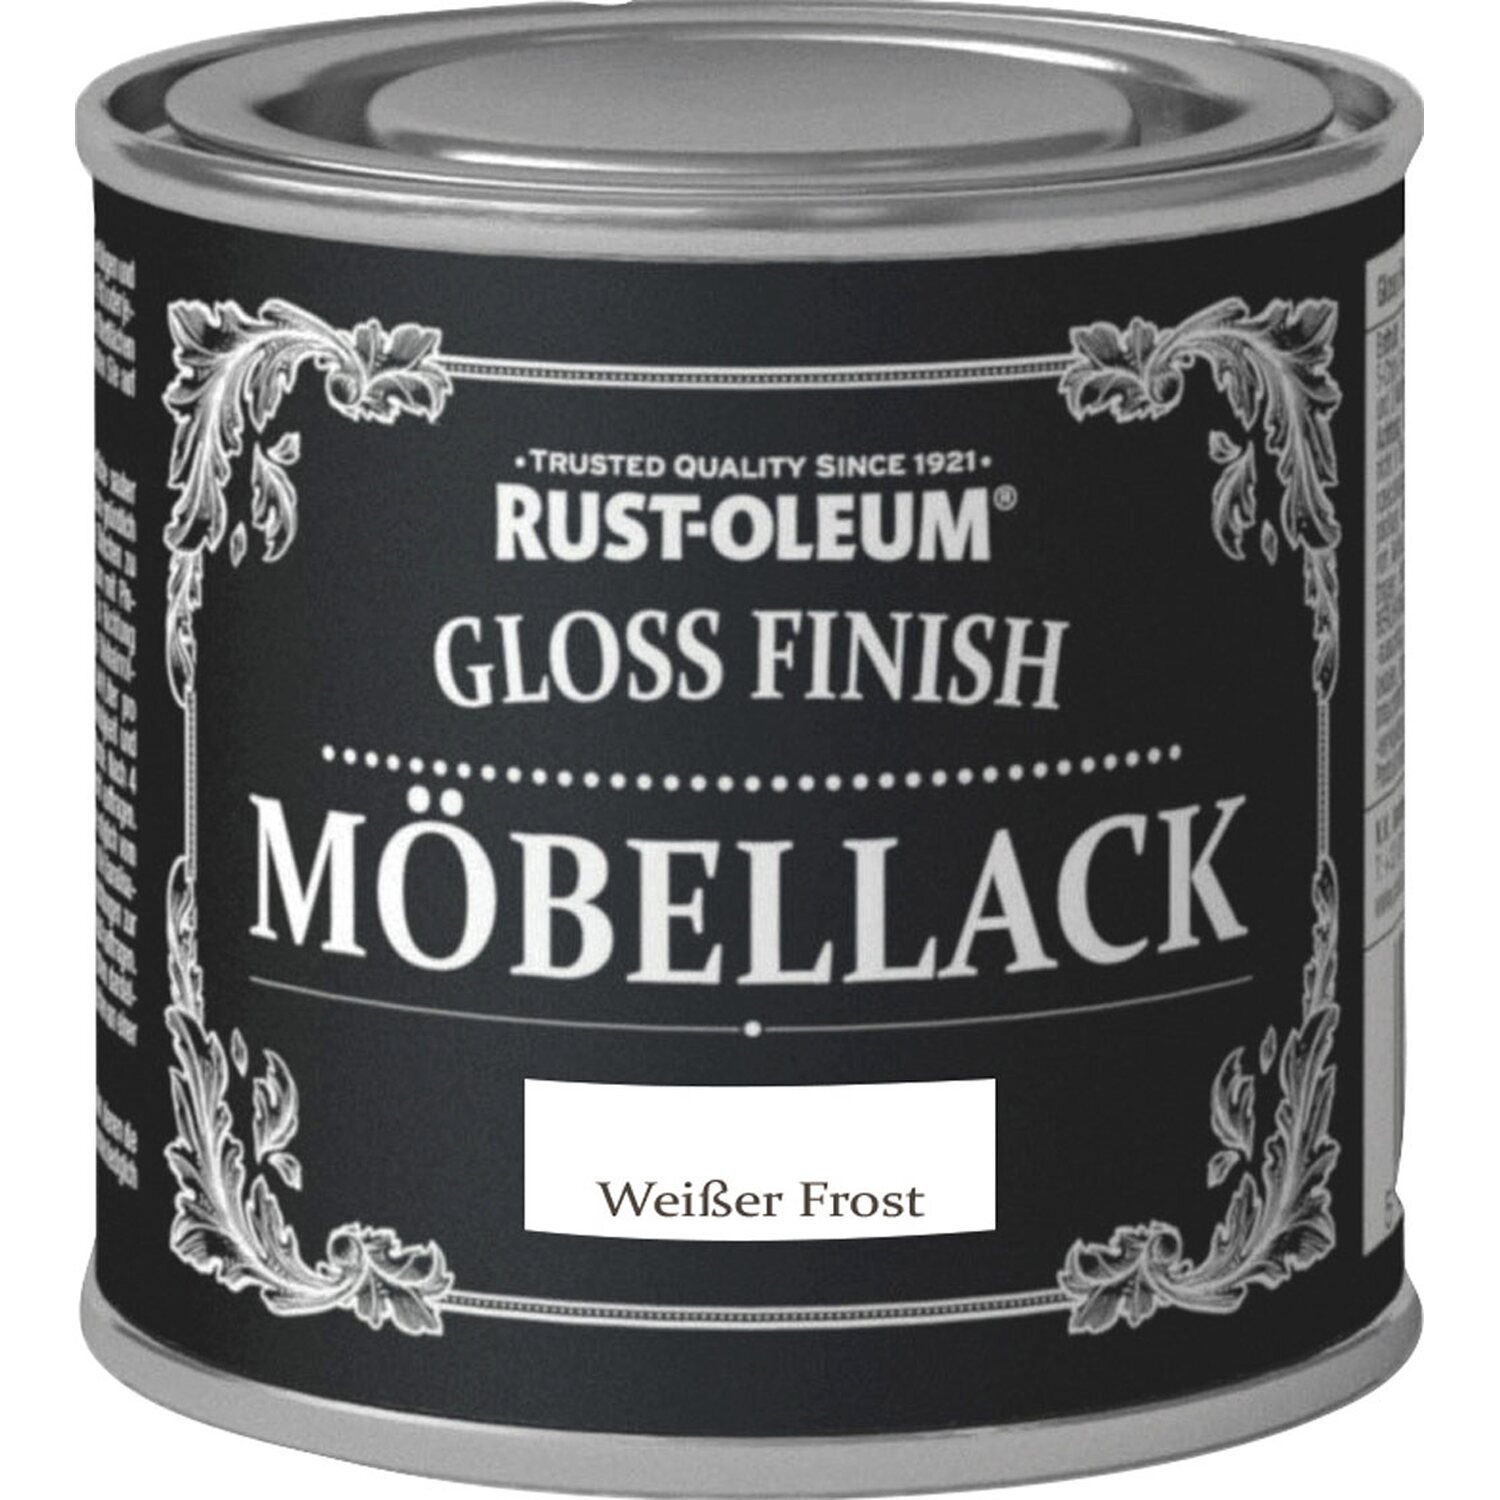 rust oleum kreidefarbe m bellack gloss finish wei er frost hochgl nzend 125 ml kaufen bei obi. Black Bedroom Furniture Sets. Home Design Ideas